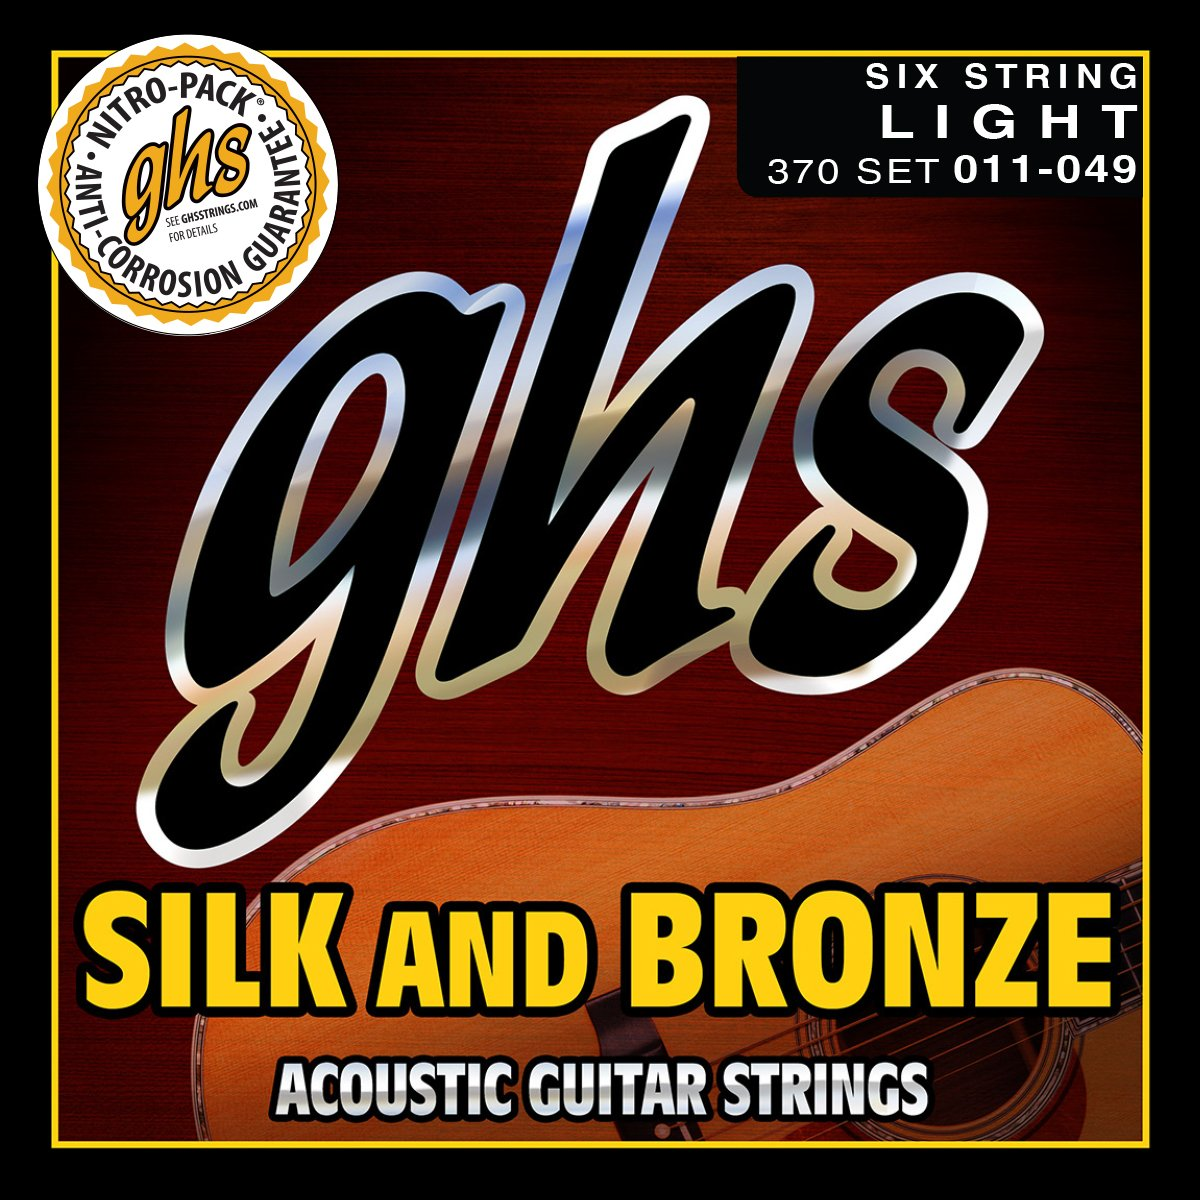 GHS Silk & Bronze Light Acoustic Guitar Strings (370)